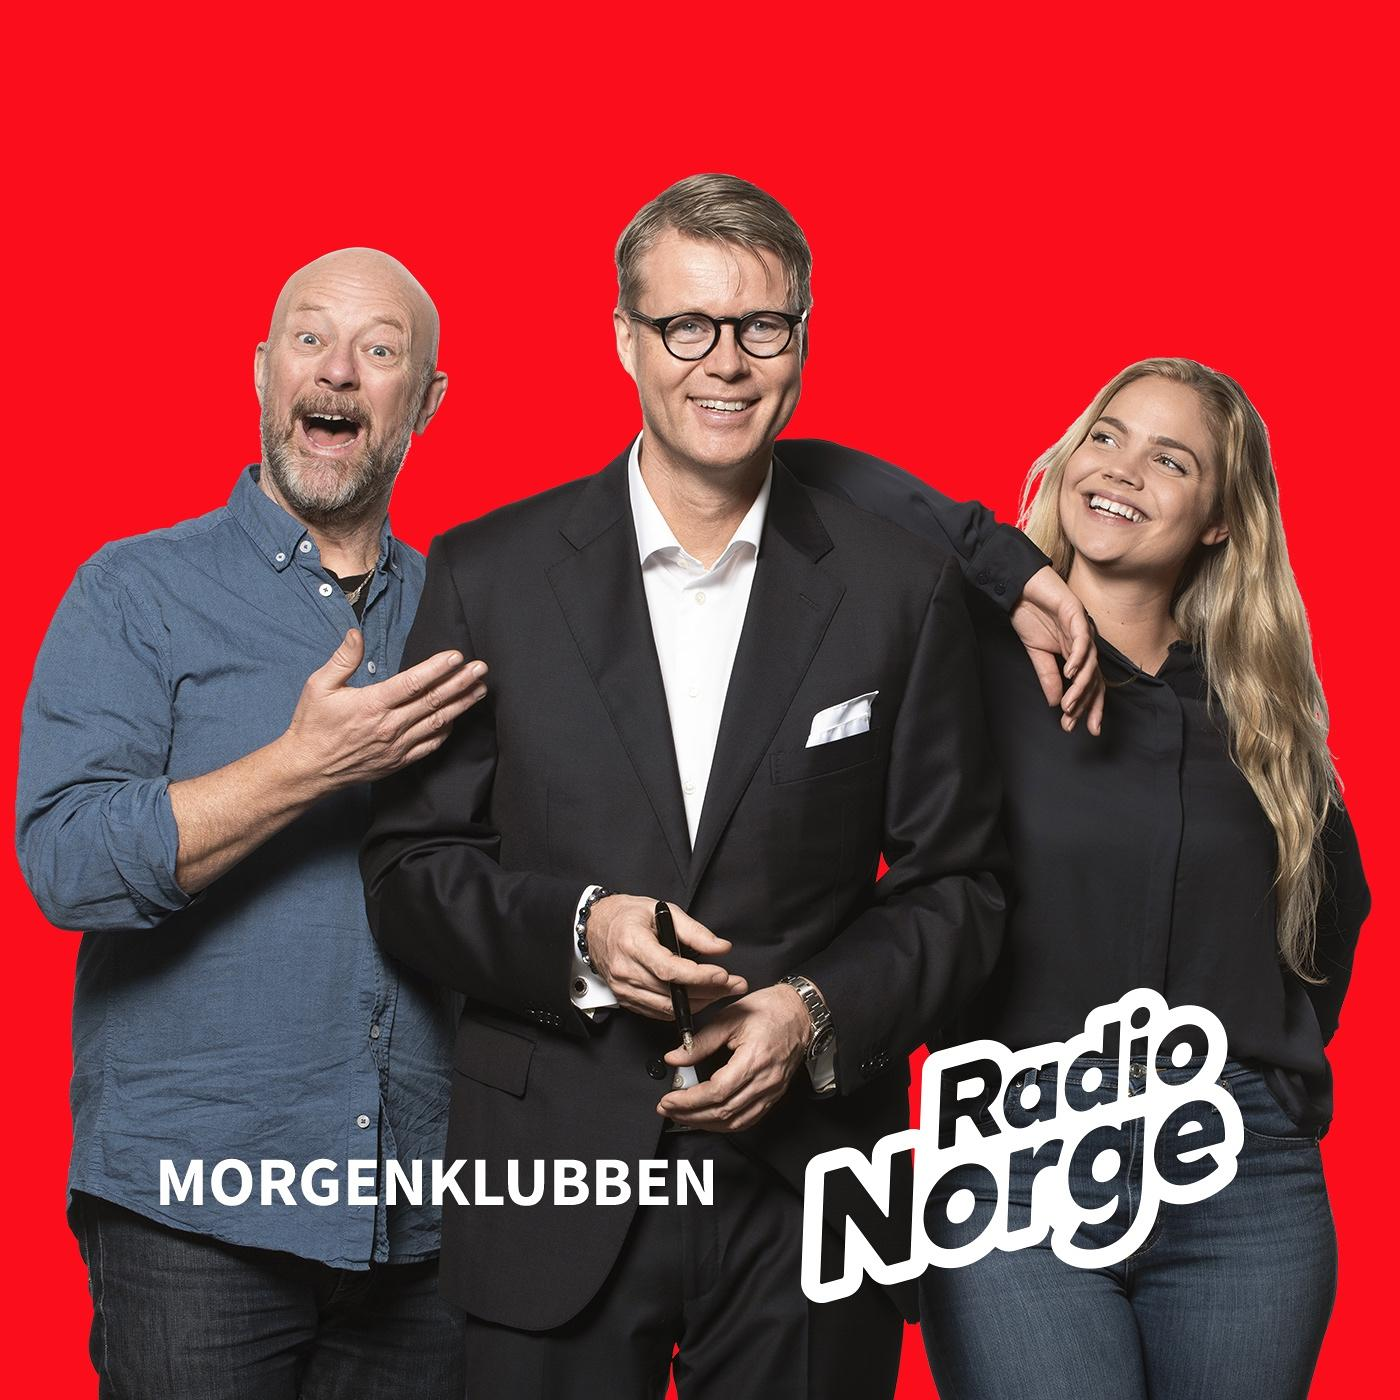 Morgenklubben med Loven & Co